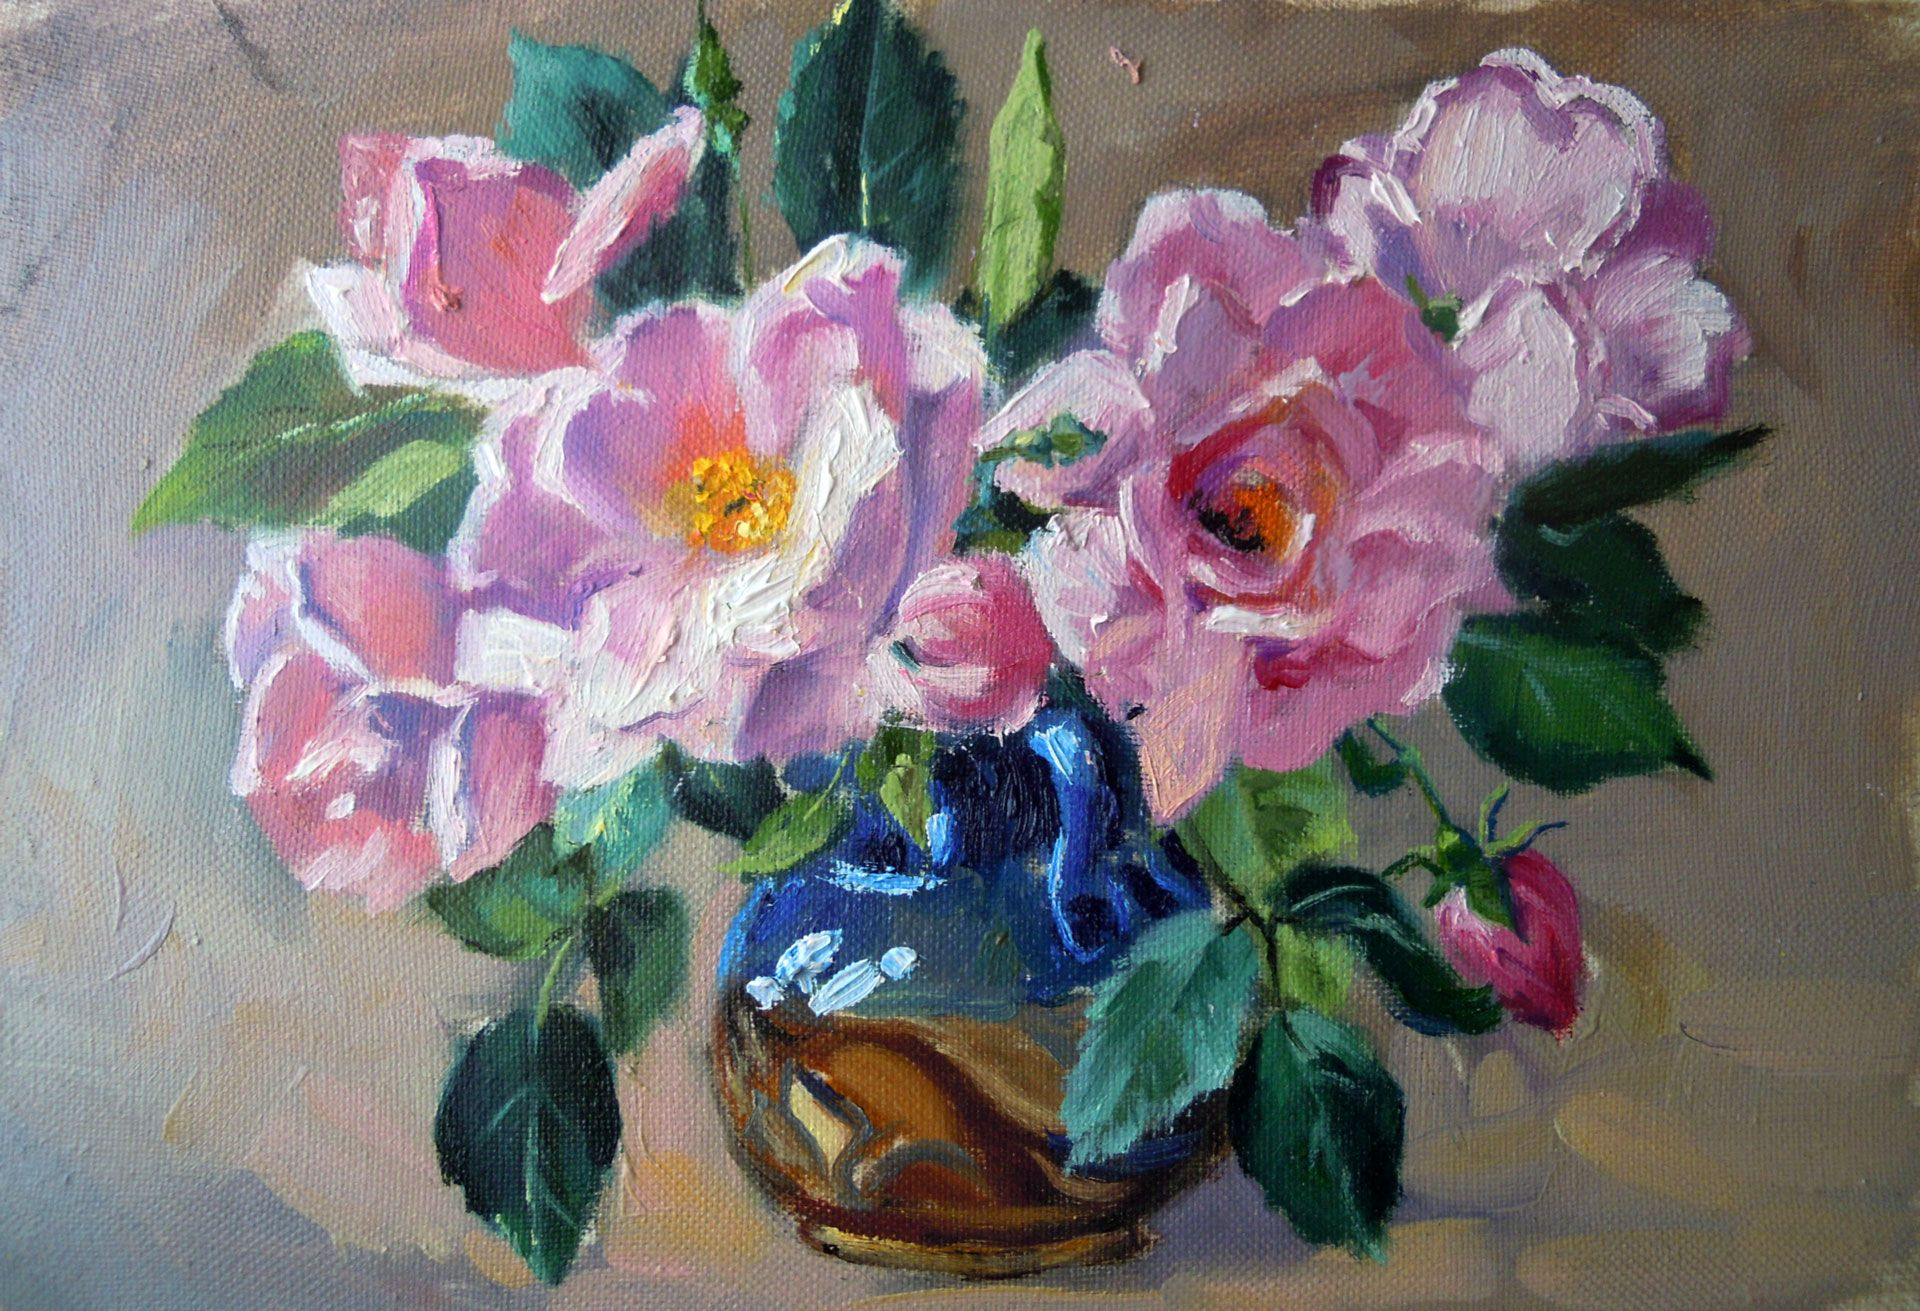 Tea roses still life for sale Order at http://buyartus.com  Oil painting review Part 26 BuyArtUs  https://youtu.be/6VwxNMFUVXI  Canvas stretched on a frame. Size: 8 x 12 in. (20х30 cm.). Materials: Oil, canvas  #oilpainting #oilpaintingsforsale #originalartforsale #paintingsforsale #oilpaintingforsale #handmadepainting #originaloilpainting #stretchedcanvas #oiloncanvas #originalart #painting #canvas #original #artforsale